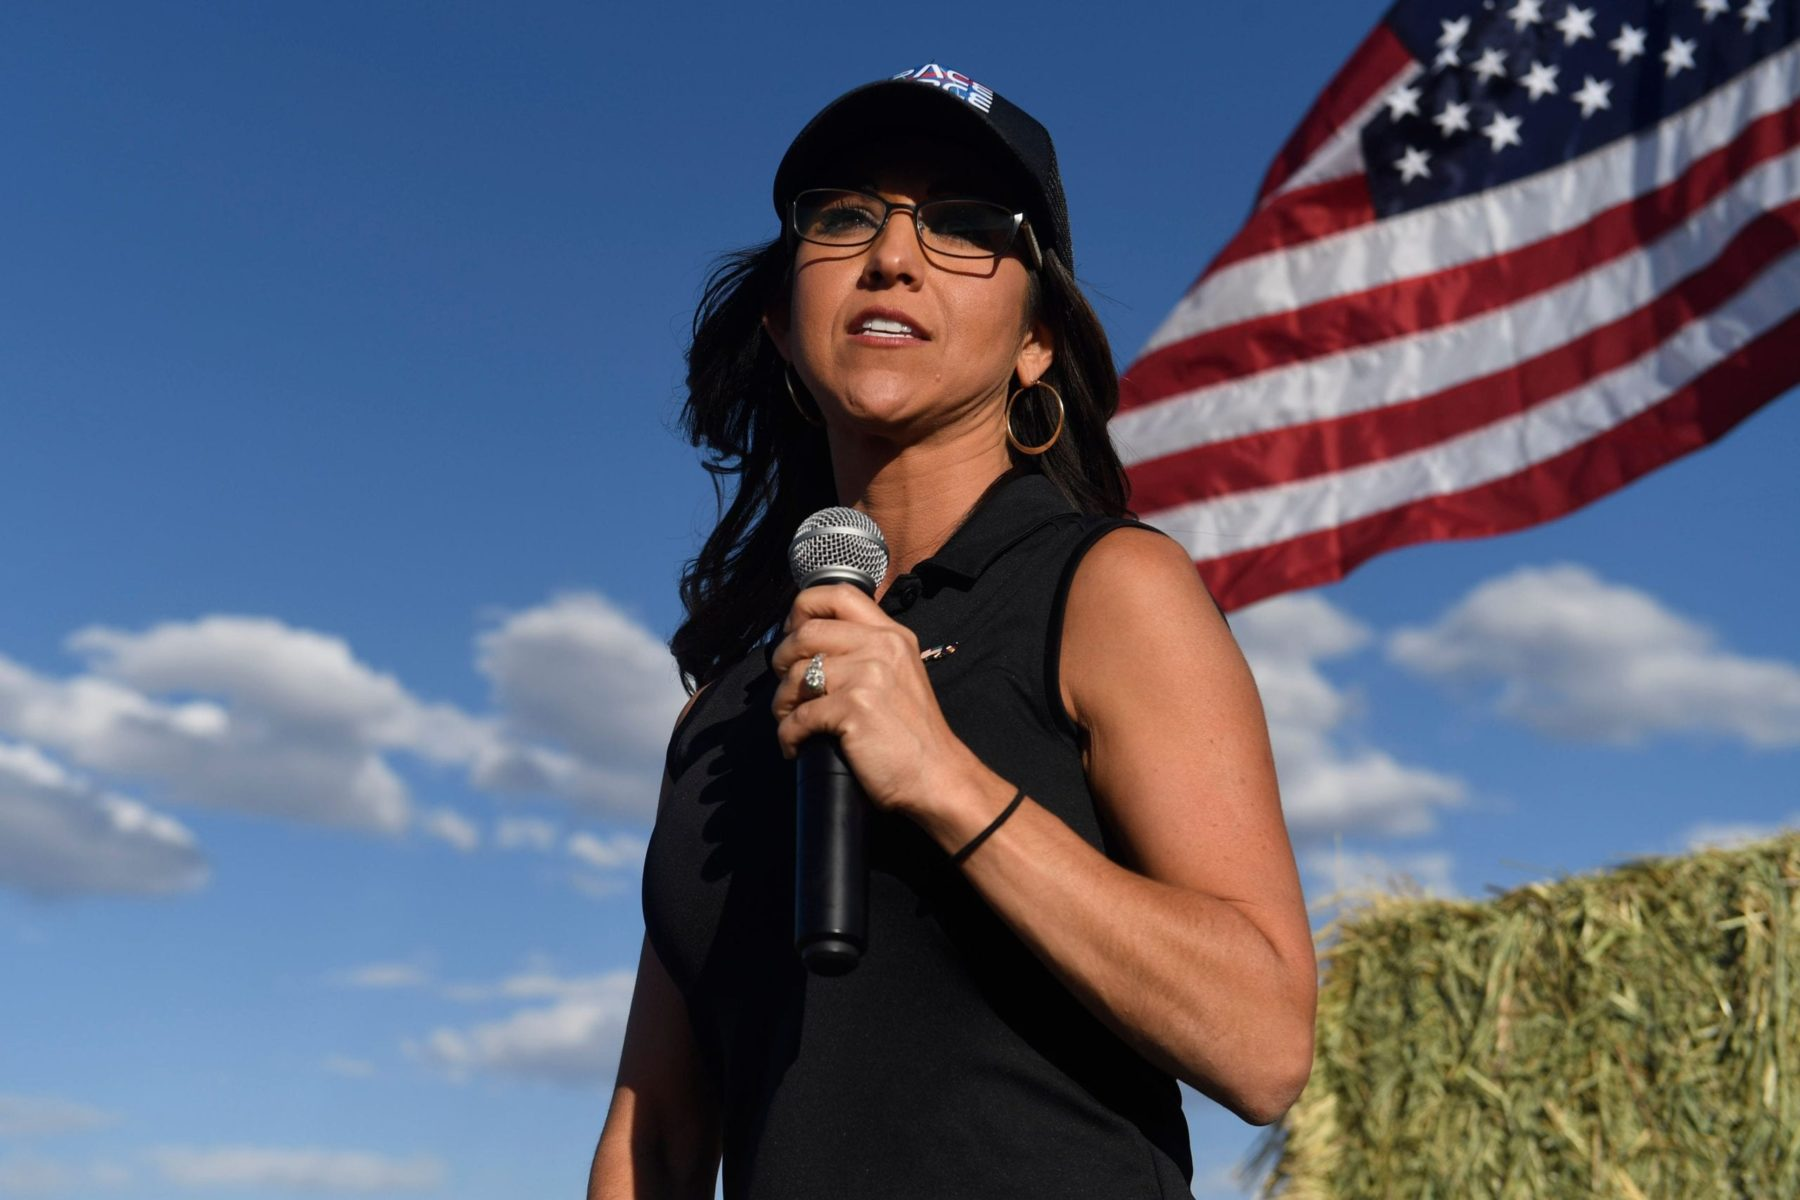 Lauren Boebert, the Republican candidate for the US House of Representatives seat in Colorado's 3rd Congressional District, addresses supporters during a campaign rally in Colona, Colorado on October 10, 2020. - Boebert's meteoric rise into politics began in September 2019 when she confronted US Democratic presidential candidate Beto ORourke at a campaign rally and stated